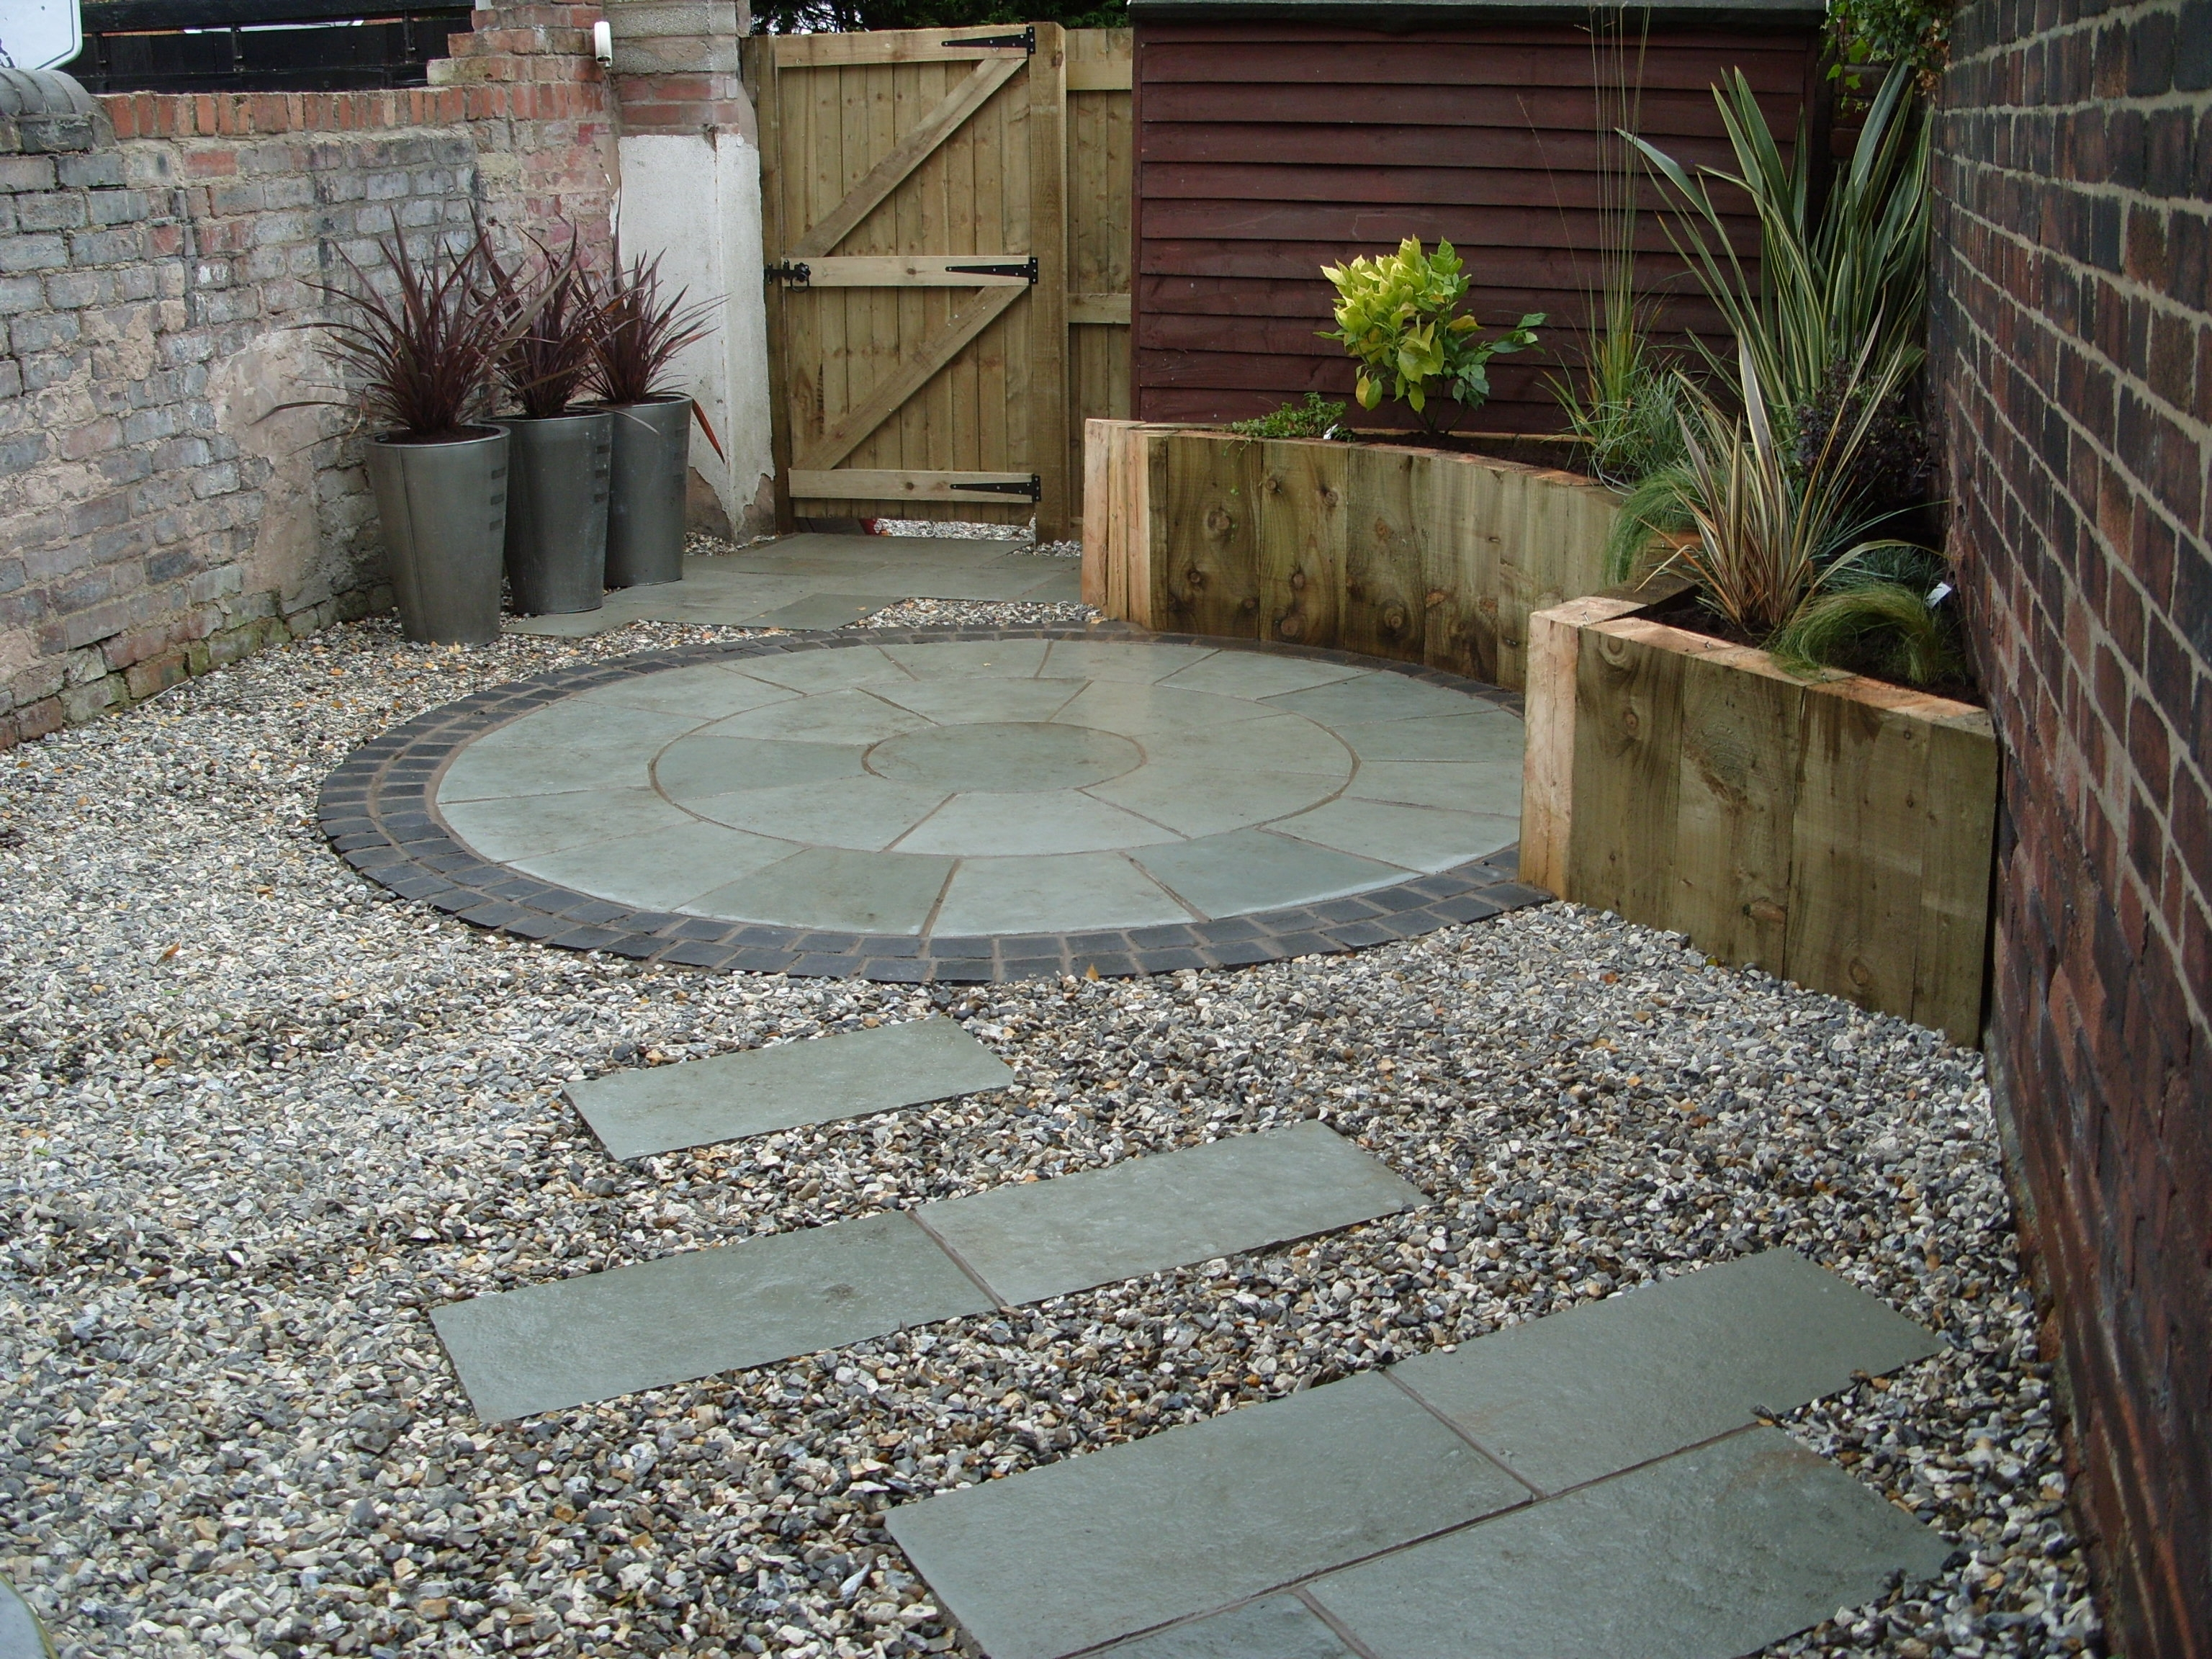 Paving ideas for small back gardens garden design for Small backyard patio ideas